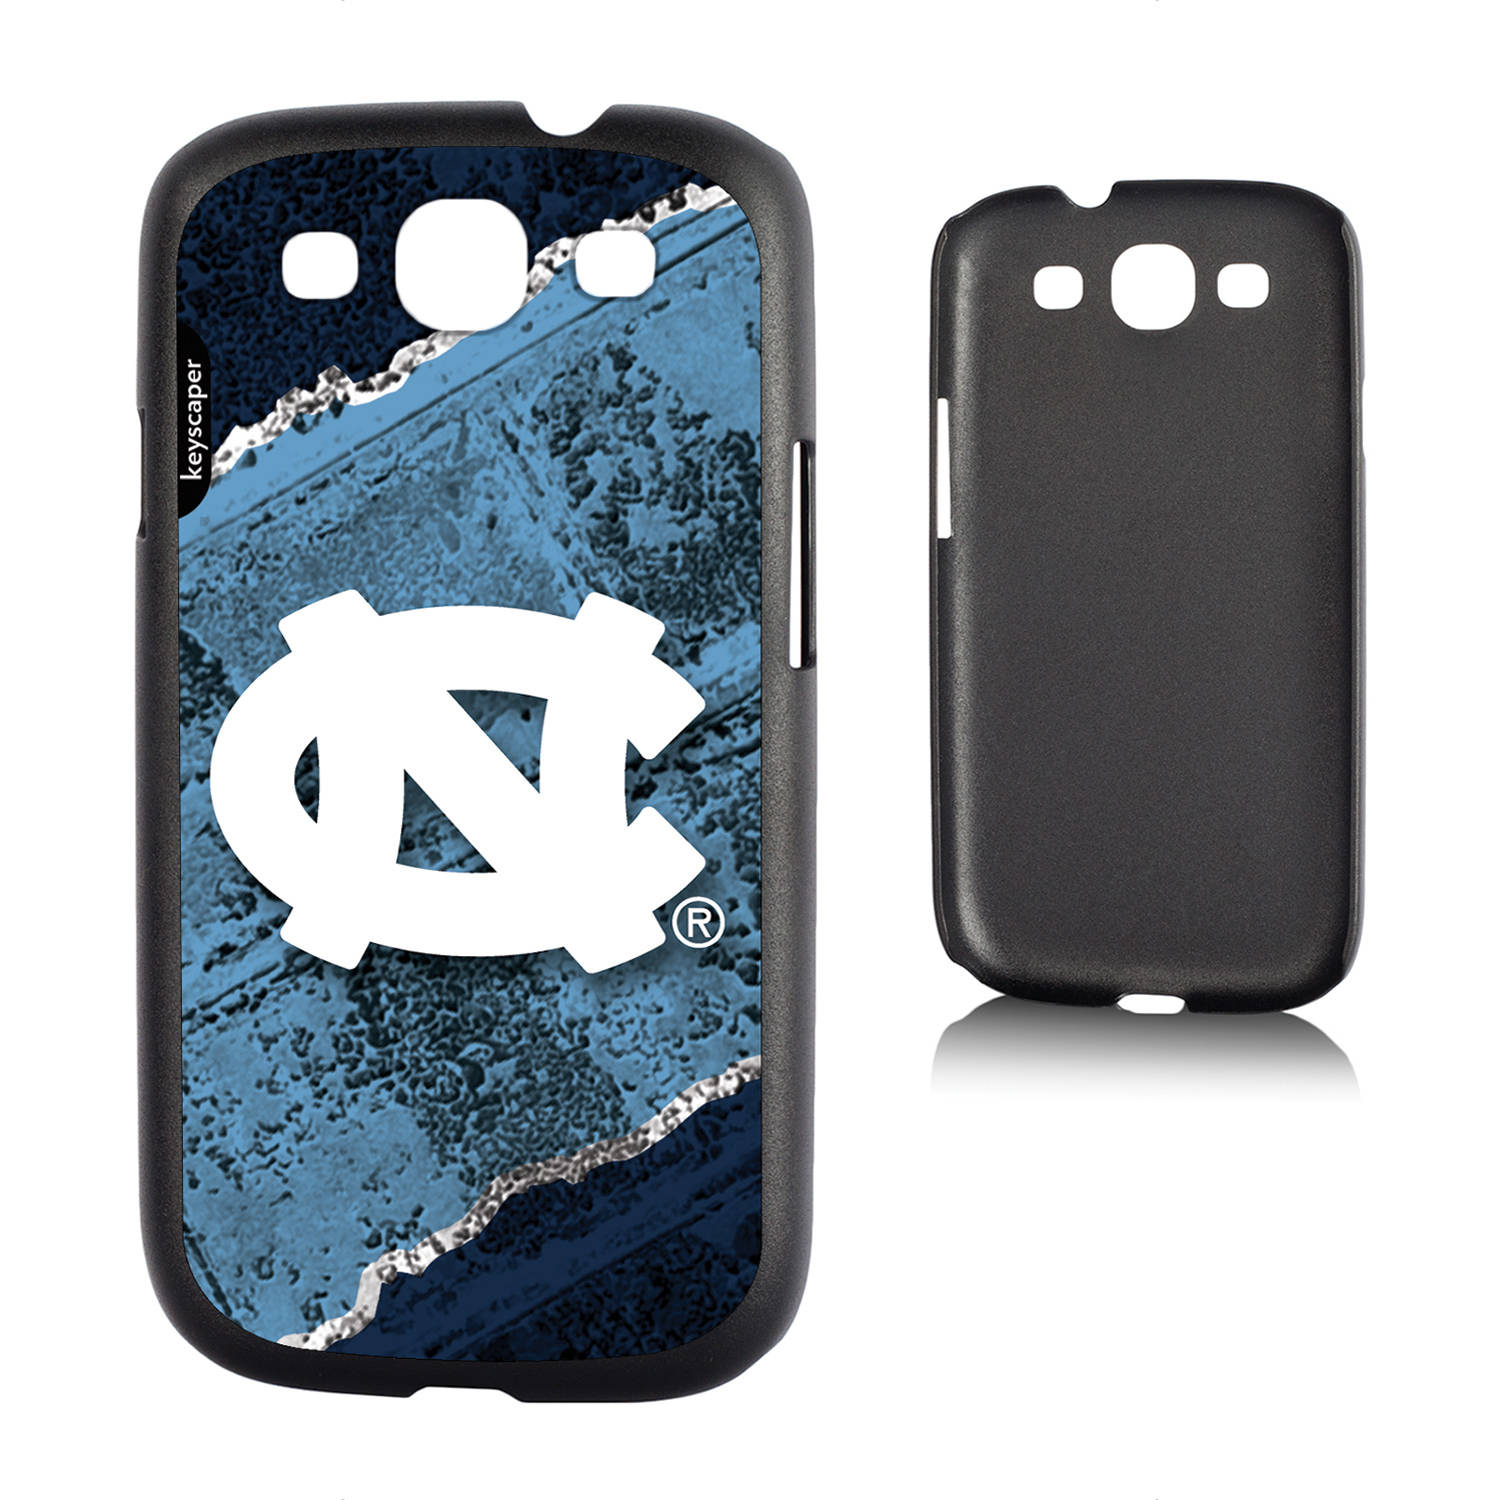 North Carolina Tar Heels Galaxy S3 Slim Case